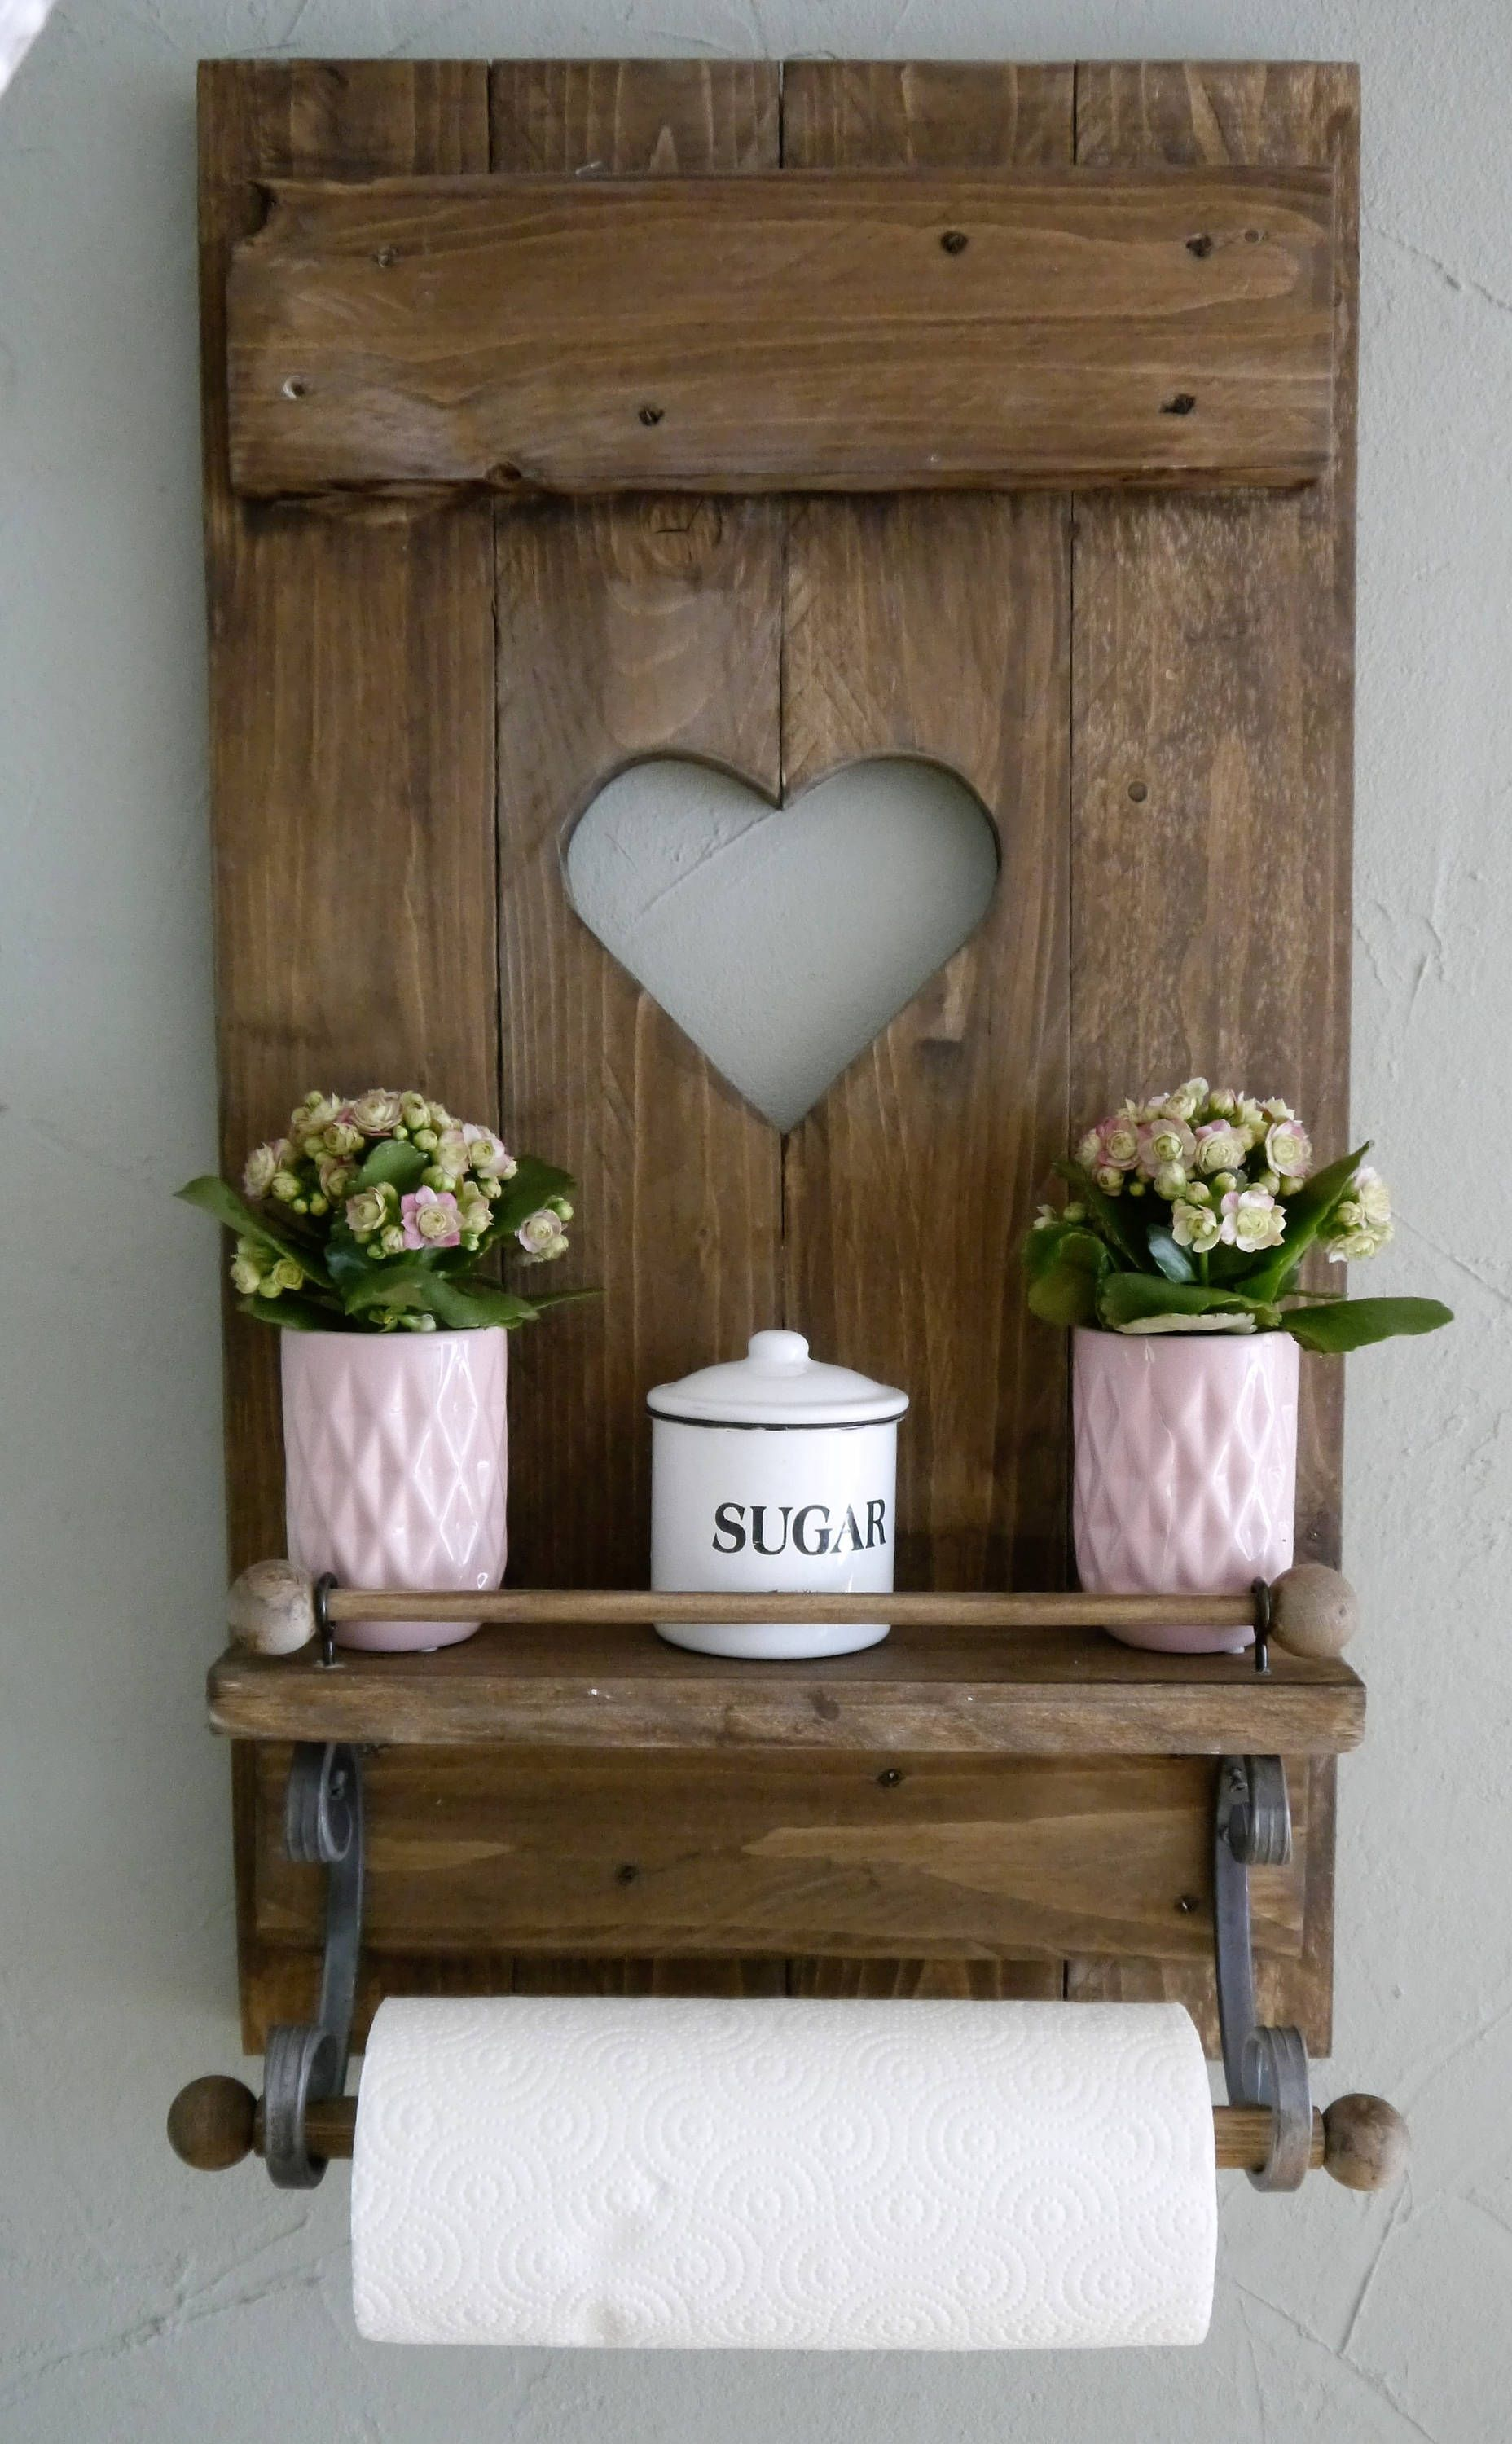 Shabby Chic Dekoration Shabby Chic Regal Related Post With Shabby Chic Regal Excellent